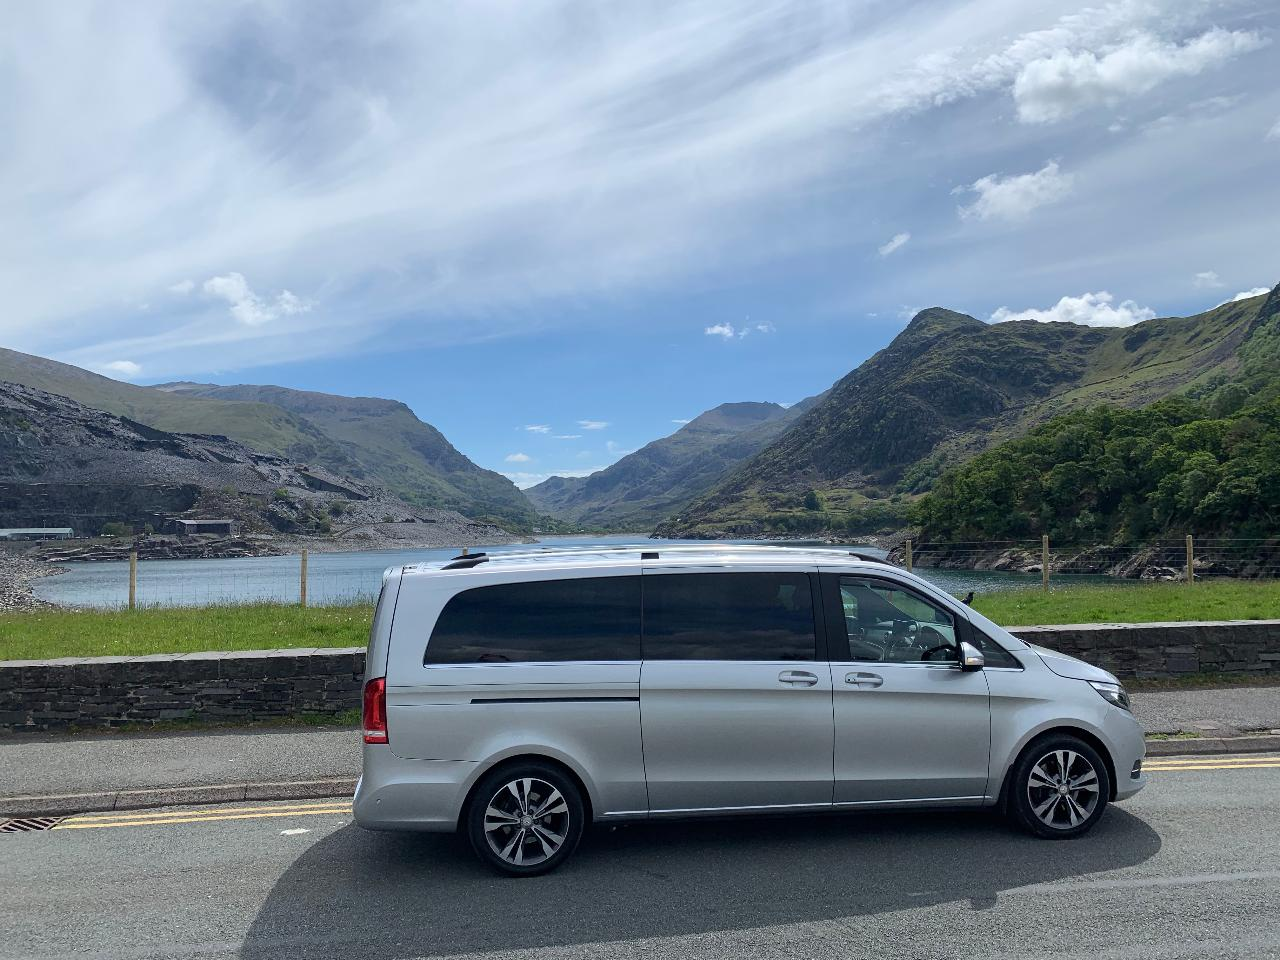 Full day Private Tour to Lake District  - available in 5 languages